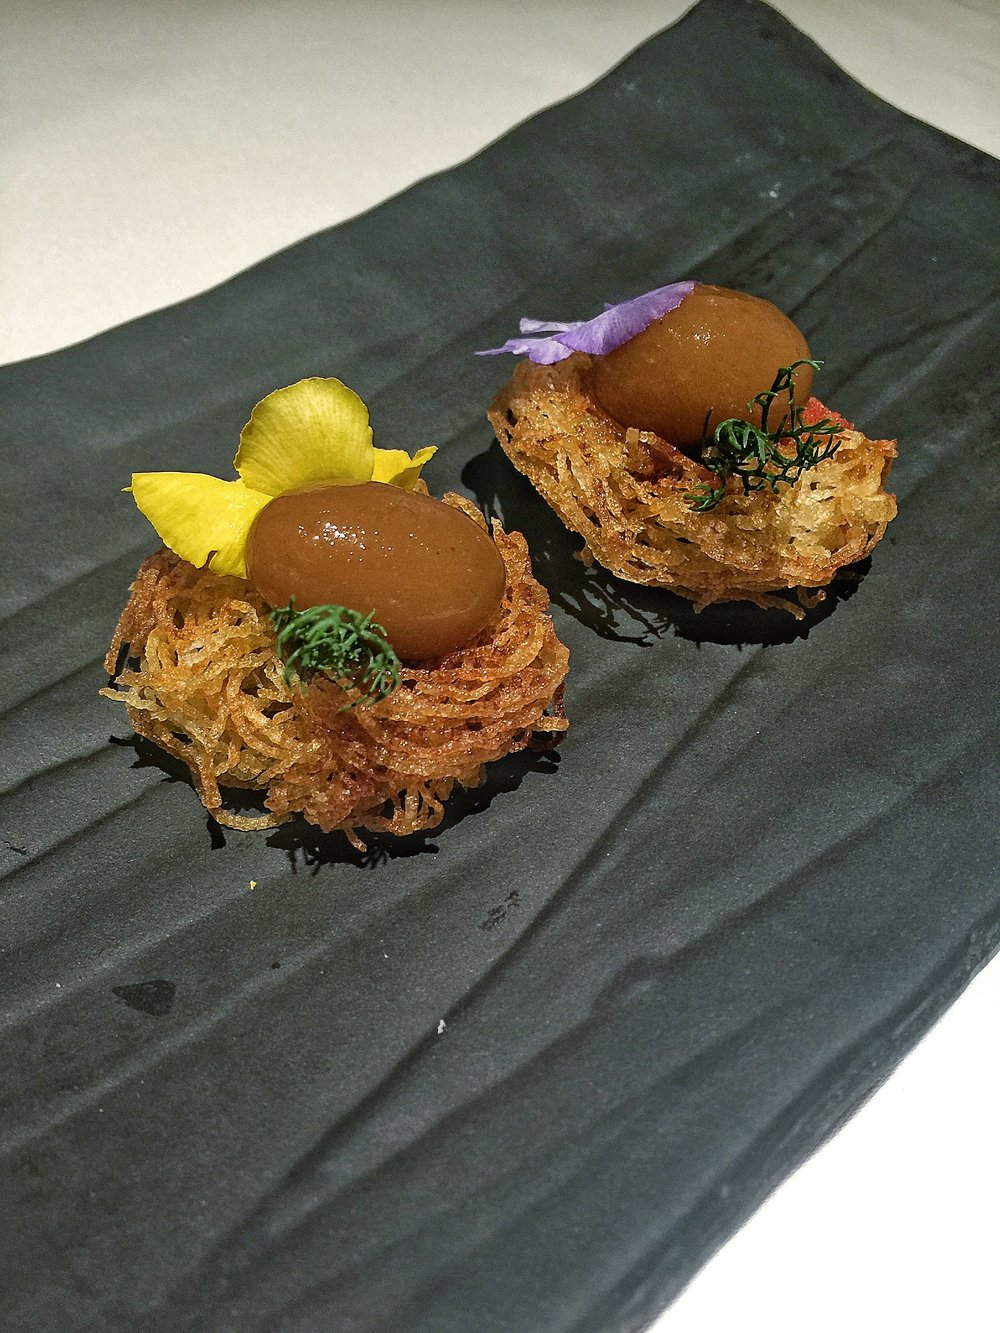 Gaggan's take on the popular Parsi dish of meat curry with potato sticks (Salli Boti) represented with a lamb curry chutney sphere sitting atop a fried potato nest.